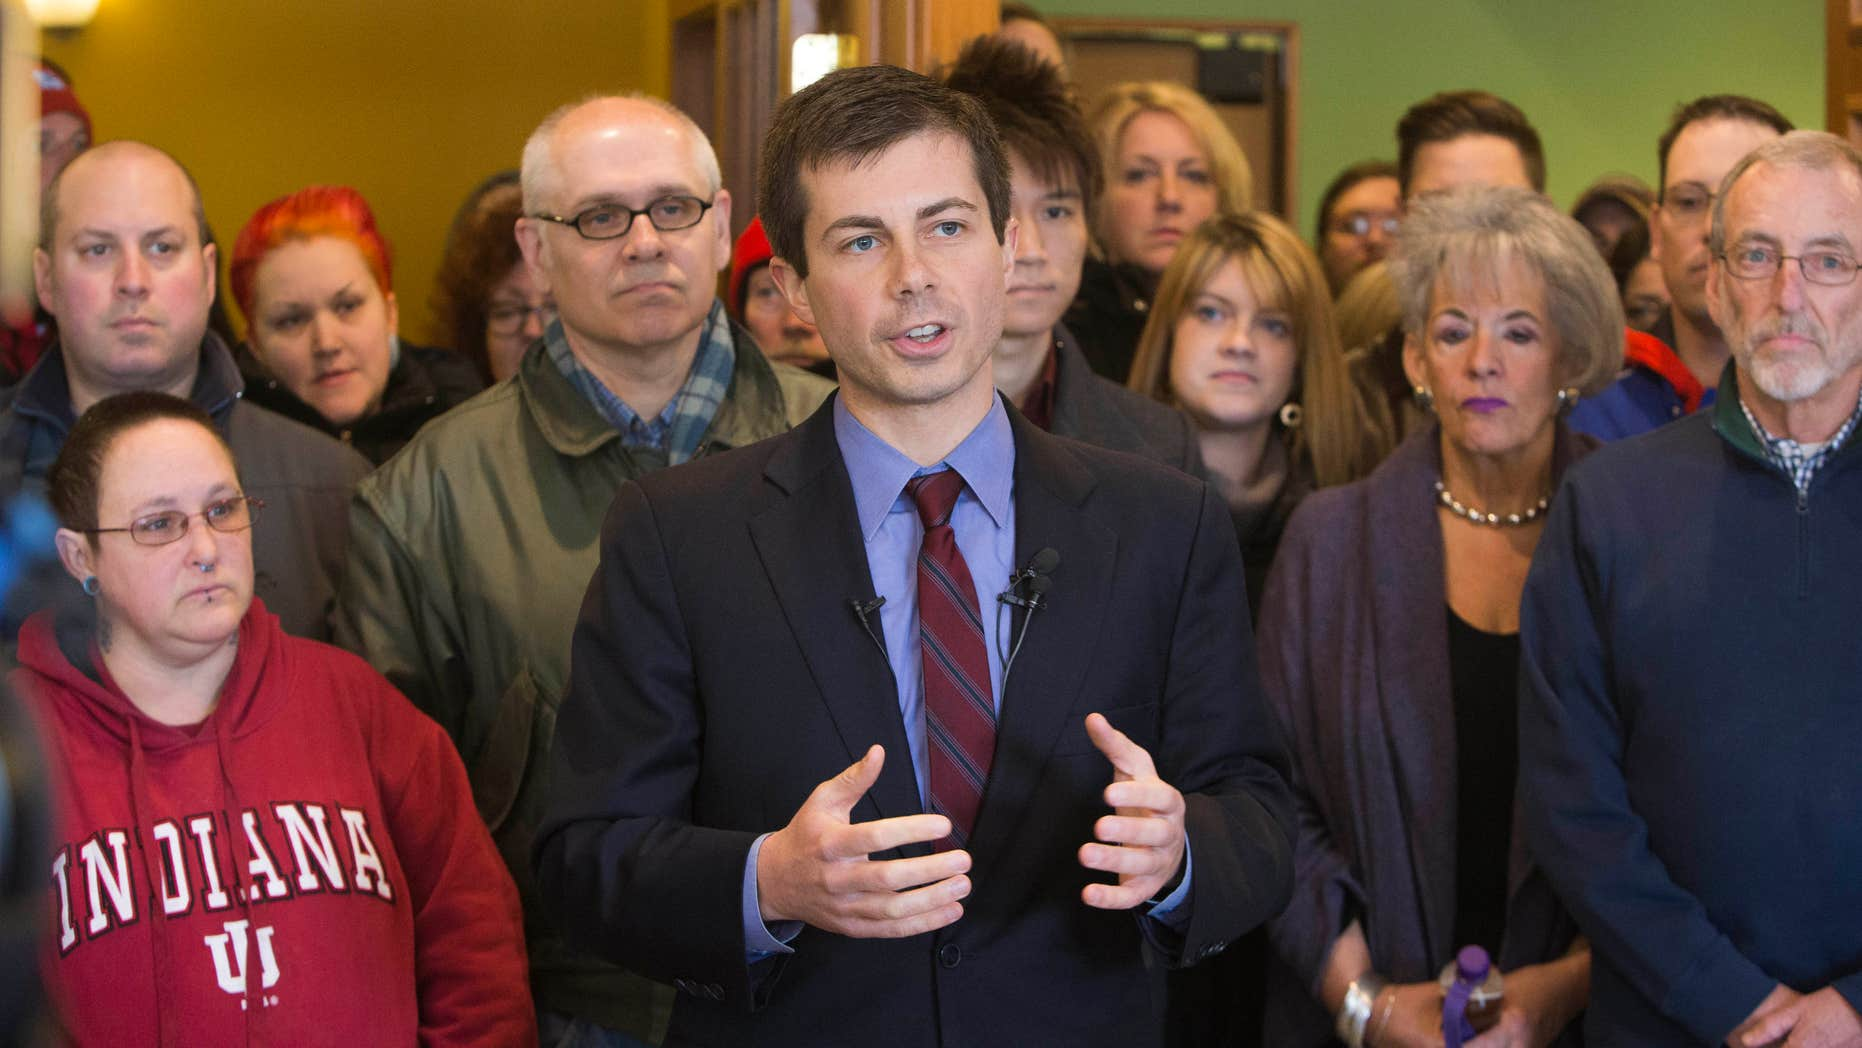 March 27, 2015: South Bend Mayor Pete Buttigieg speaks about the area's opposition to the recently signed religious freedom legislation in downtown South Bend.